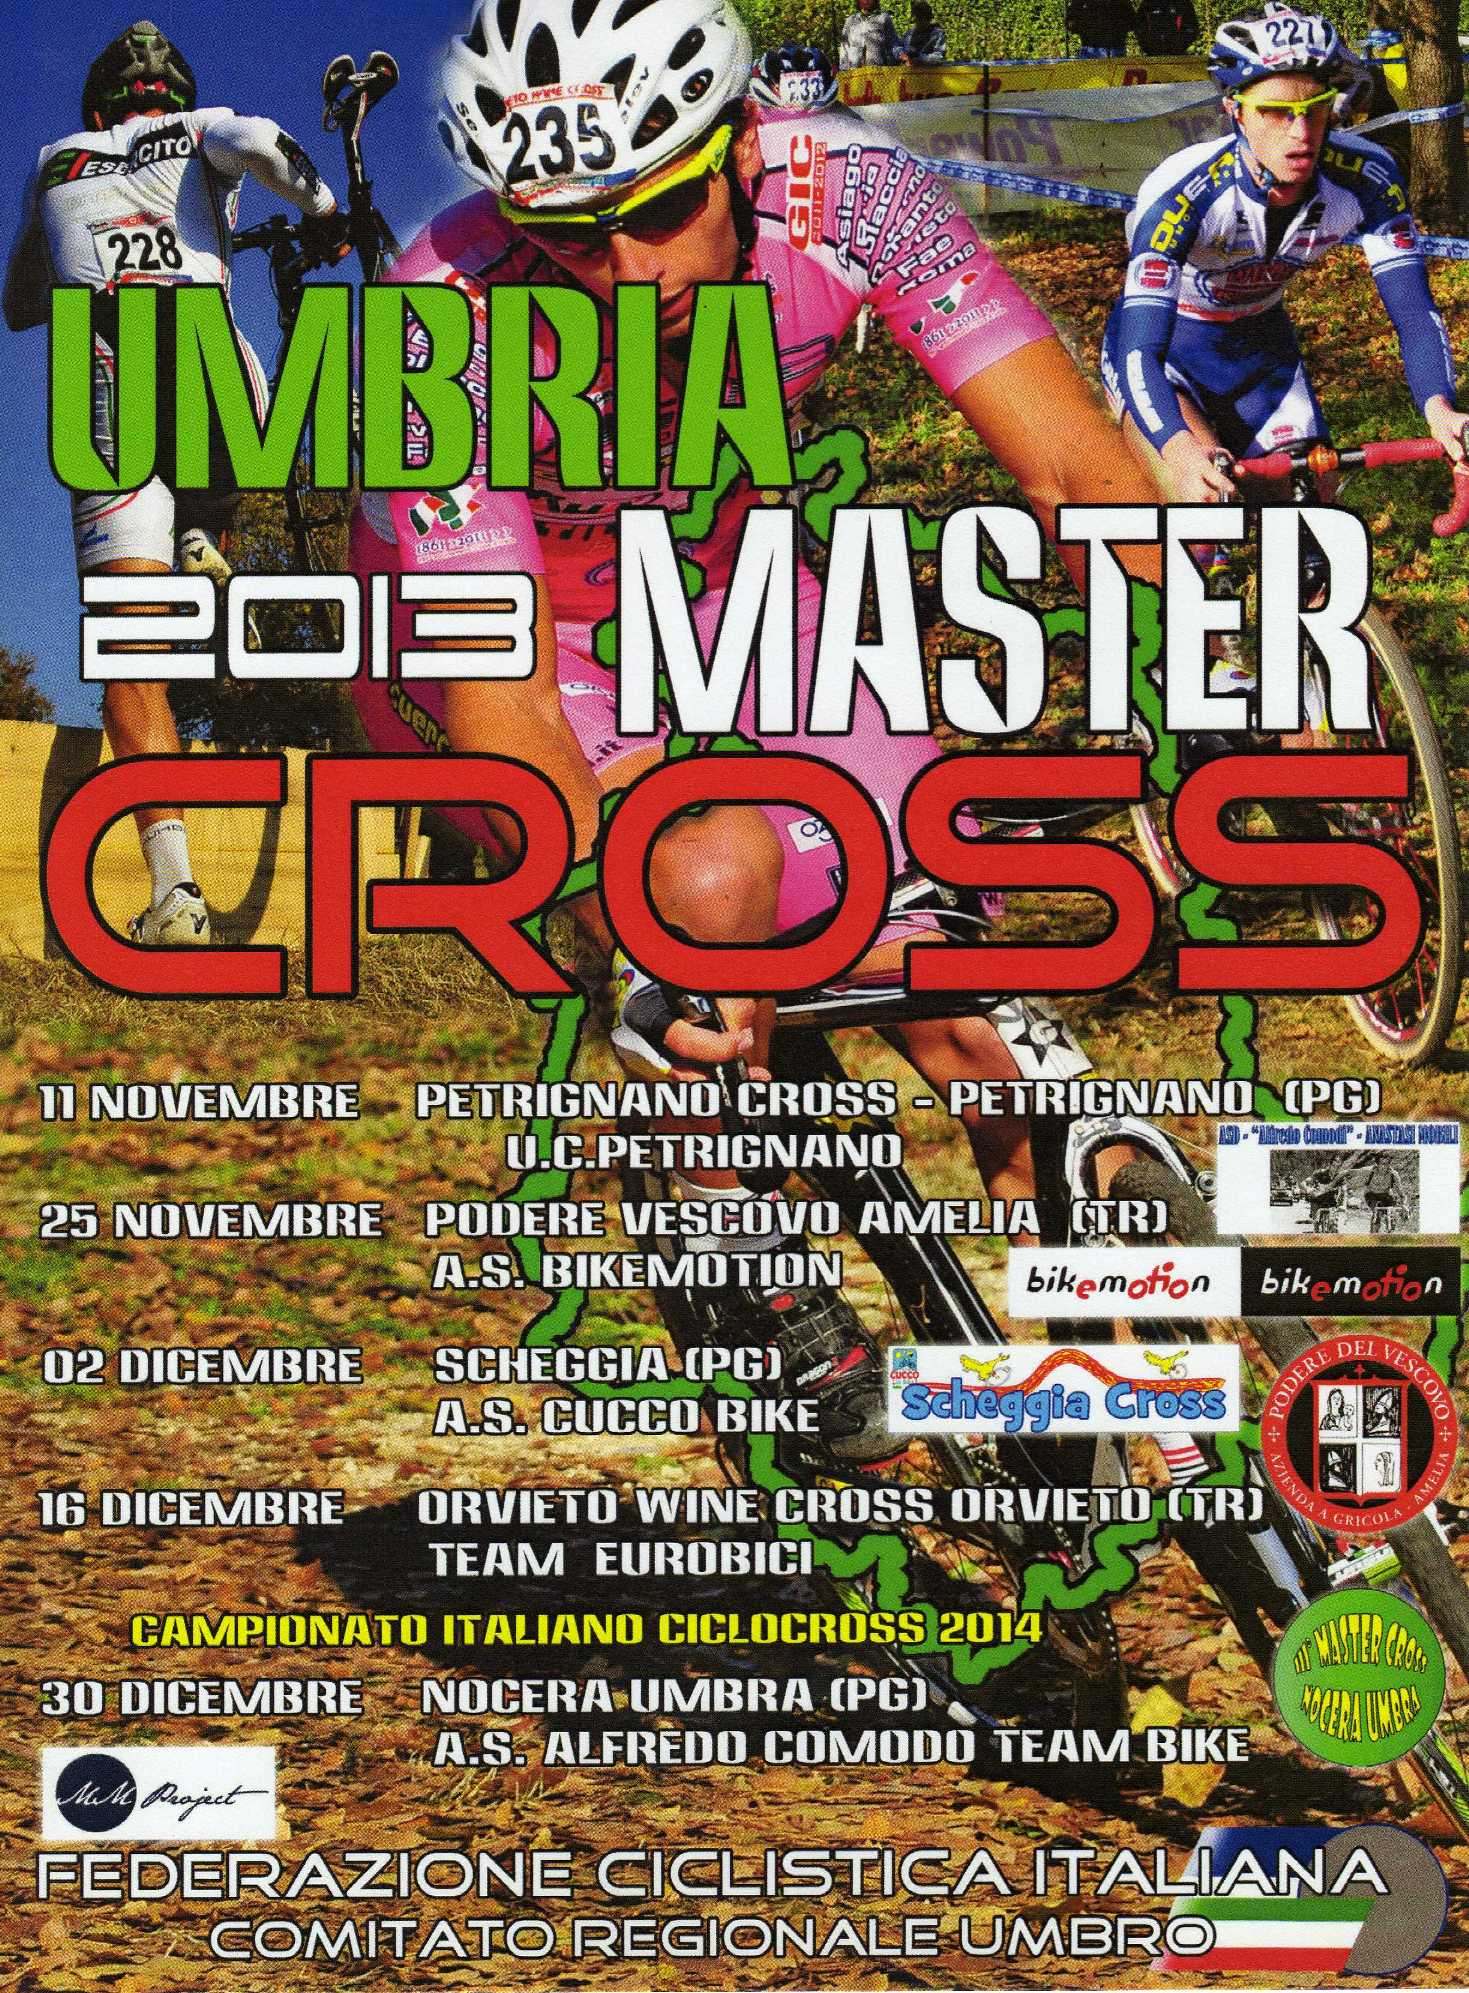 UmbriaMasterCross2012